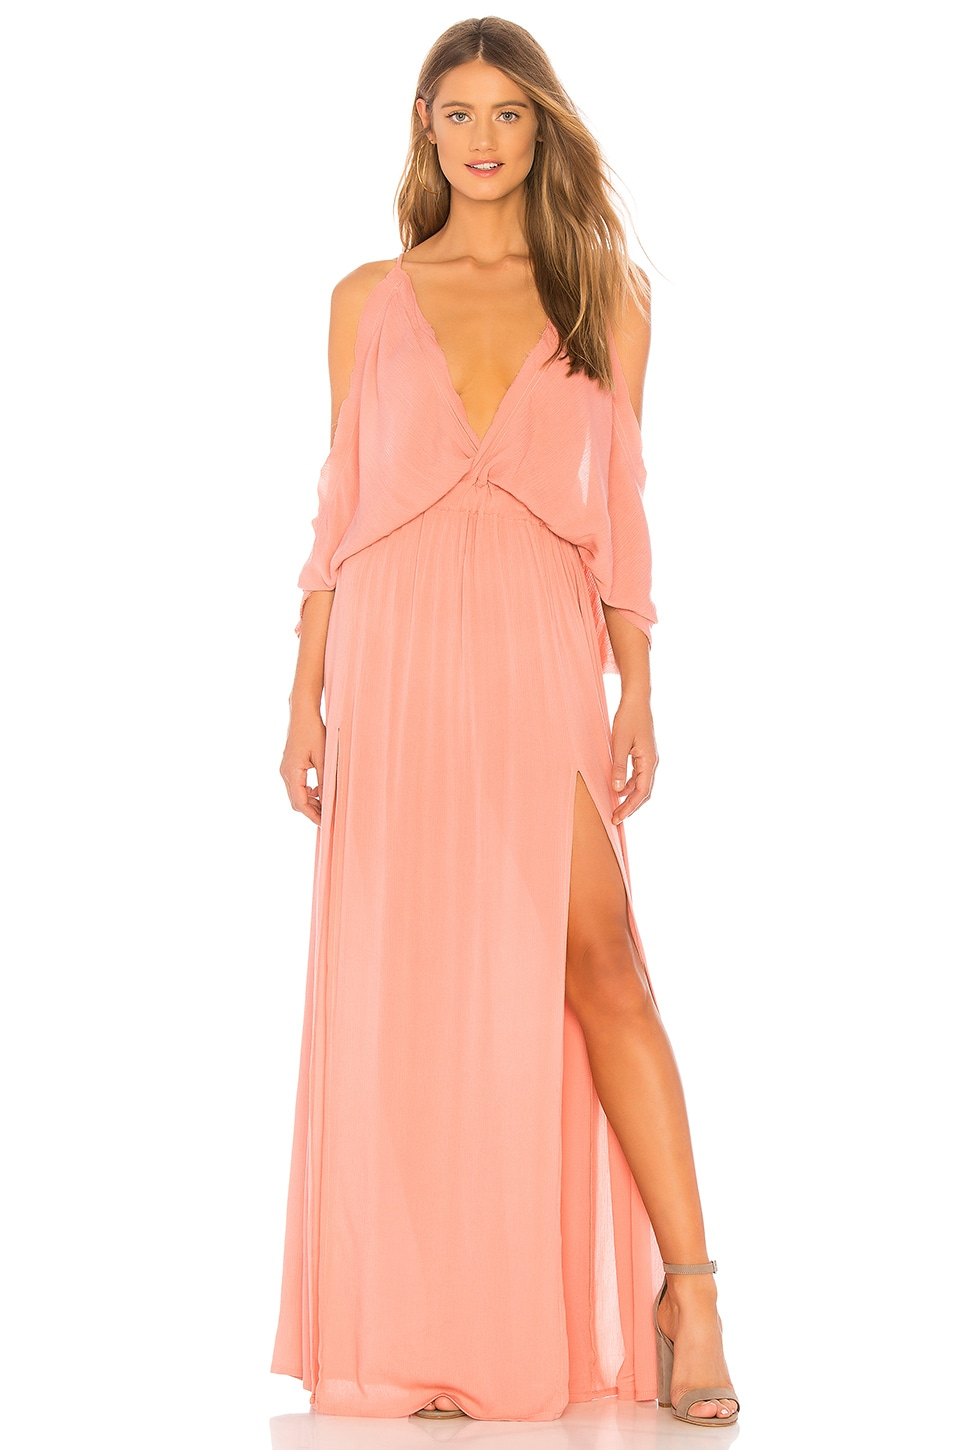 Tiare Hawaii Pez Cantina Dress in Dusty Rose